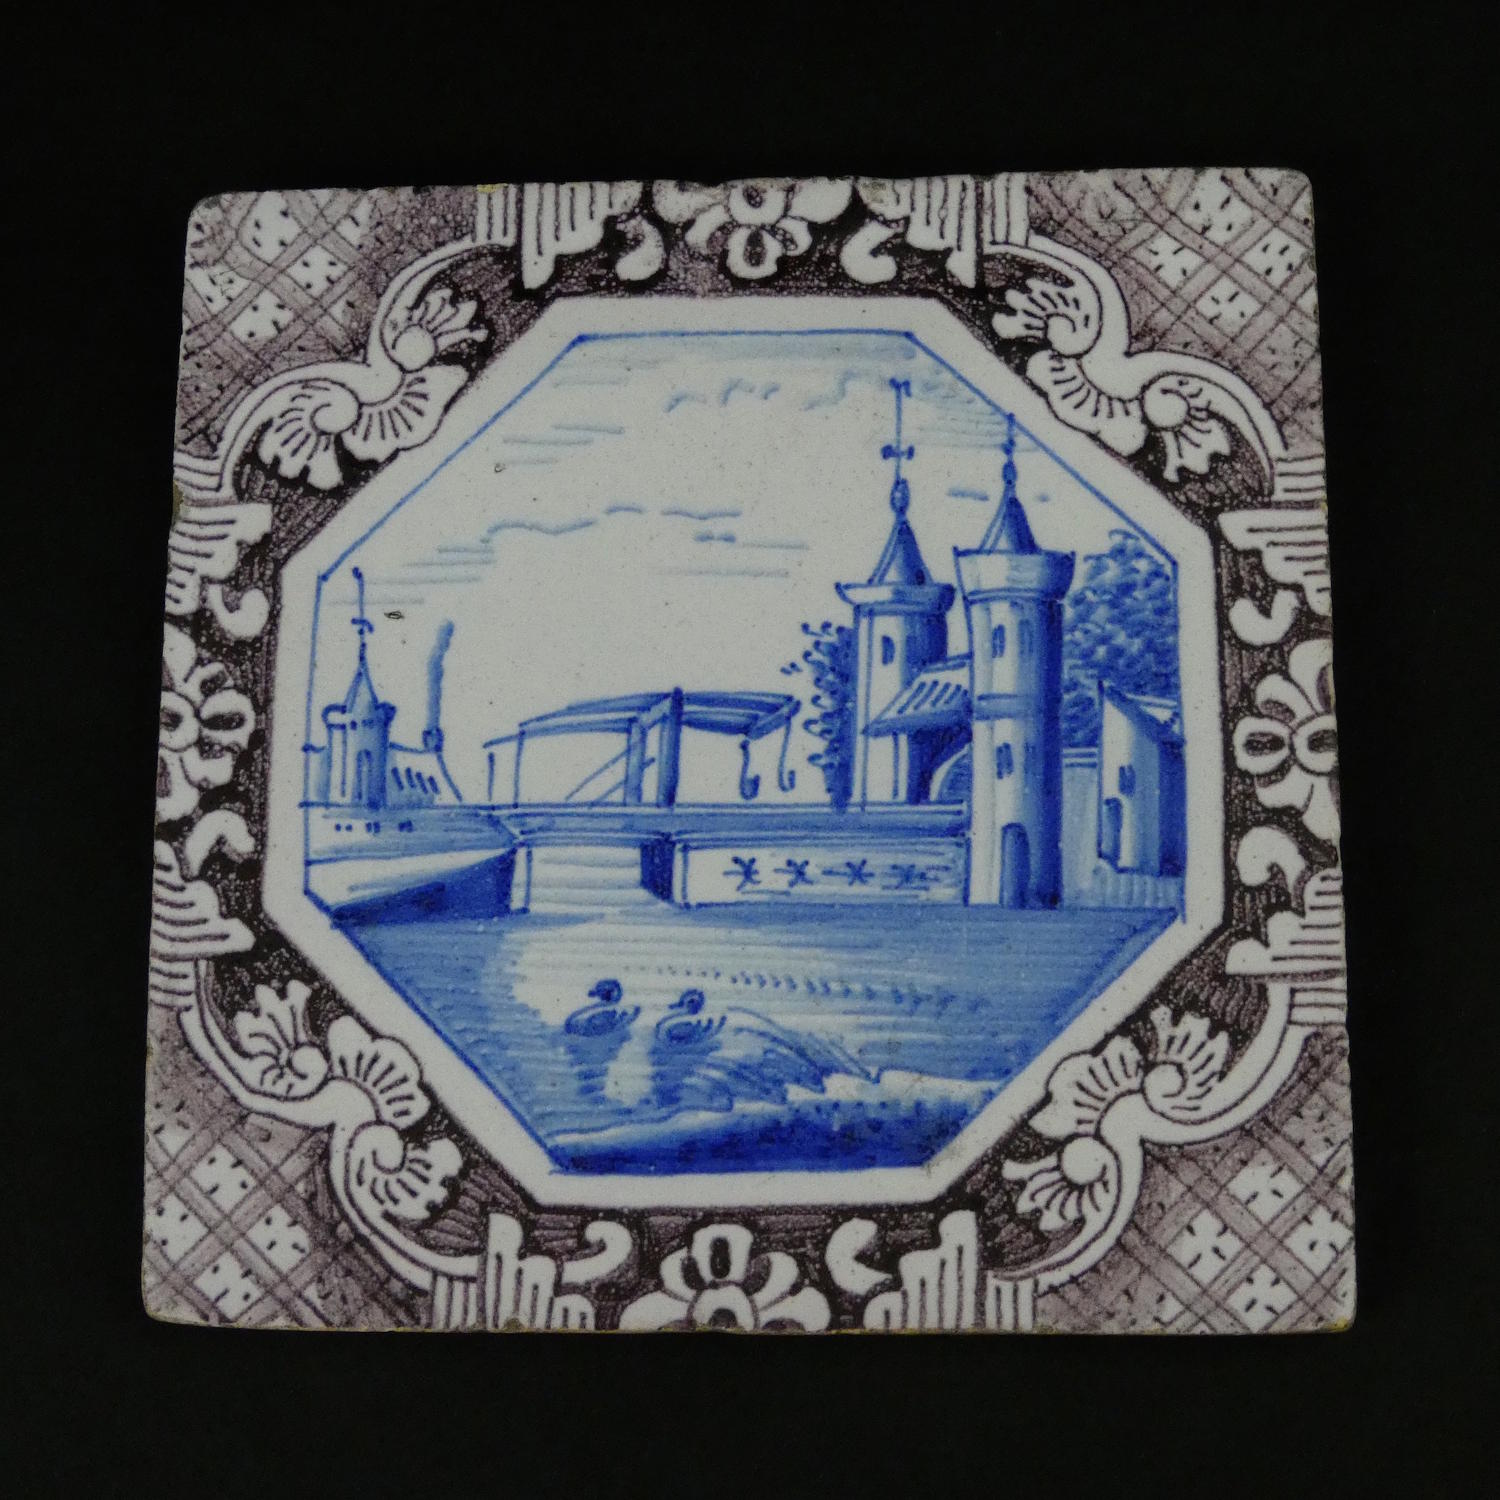 Manganese and Blue Delft Tile